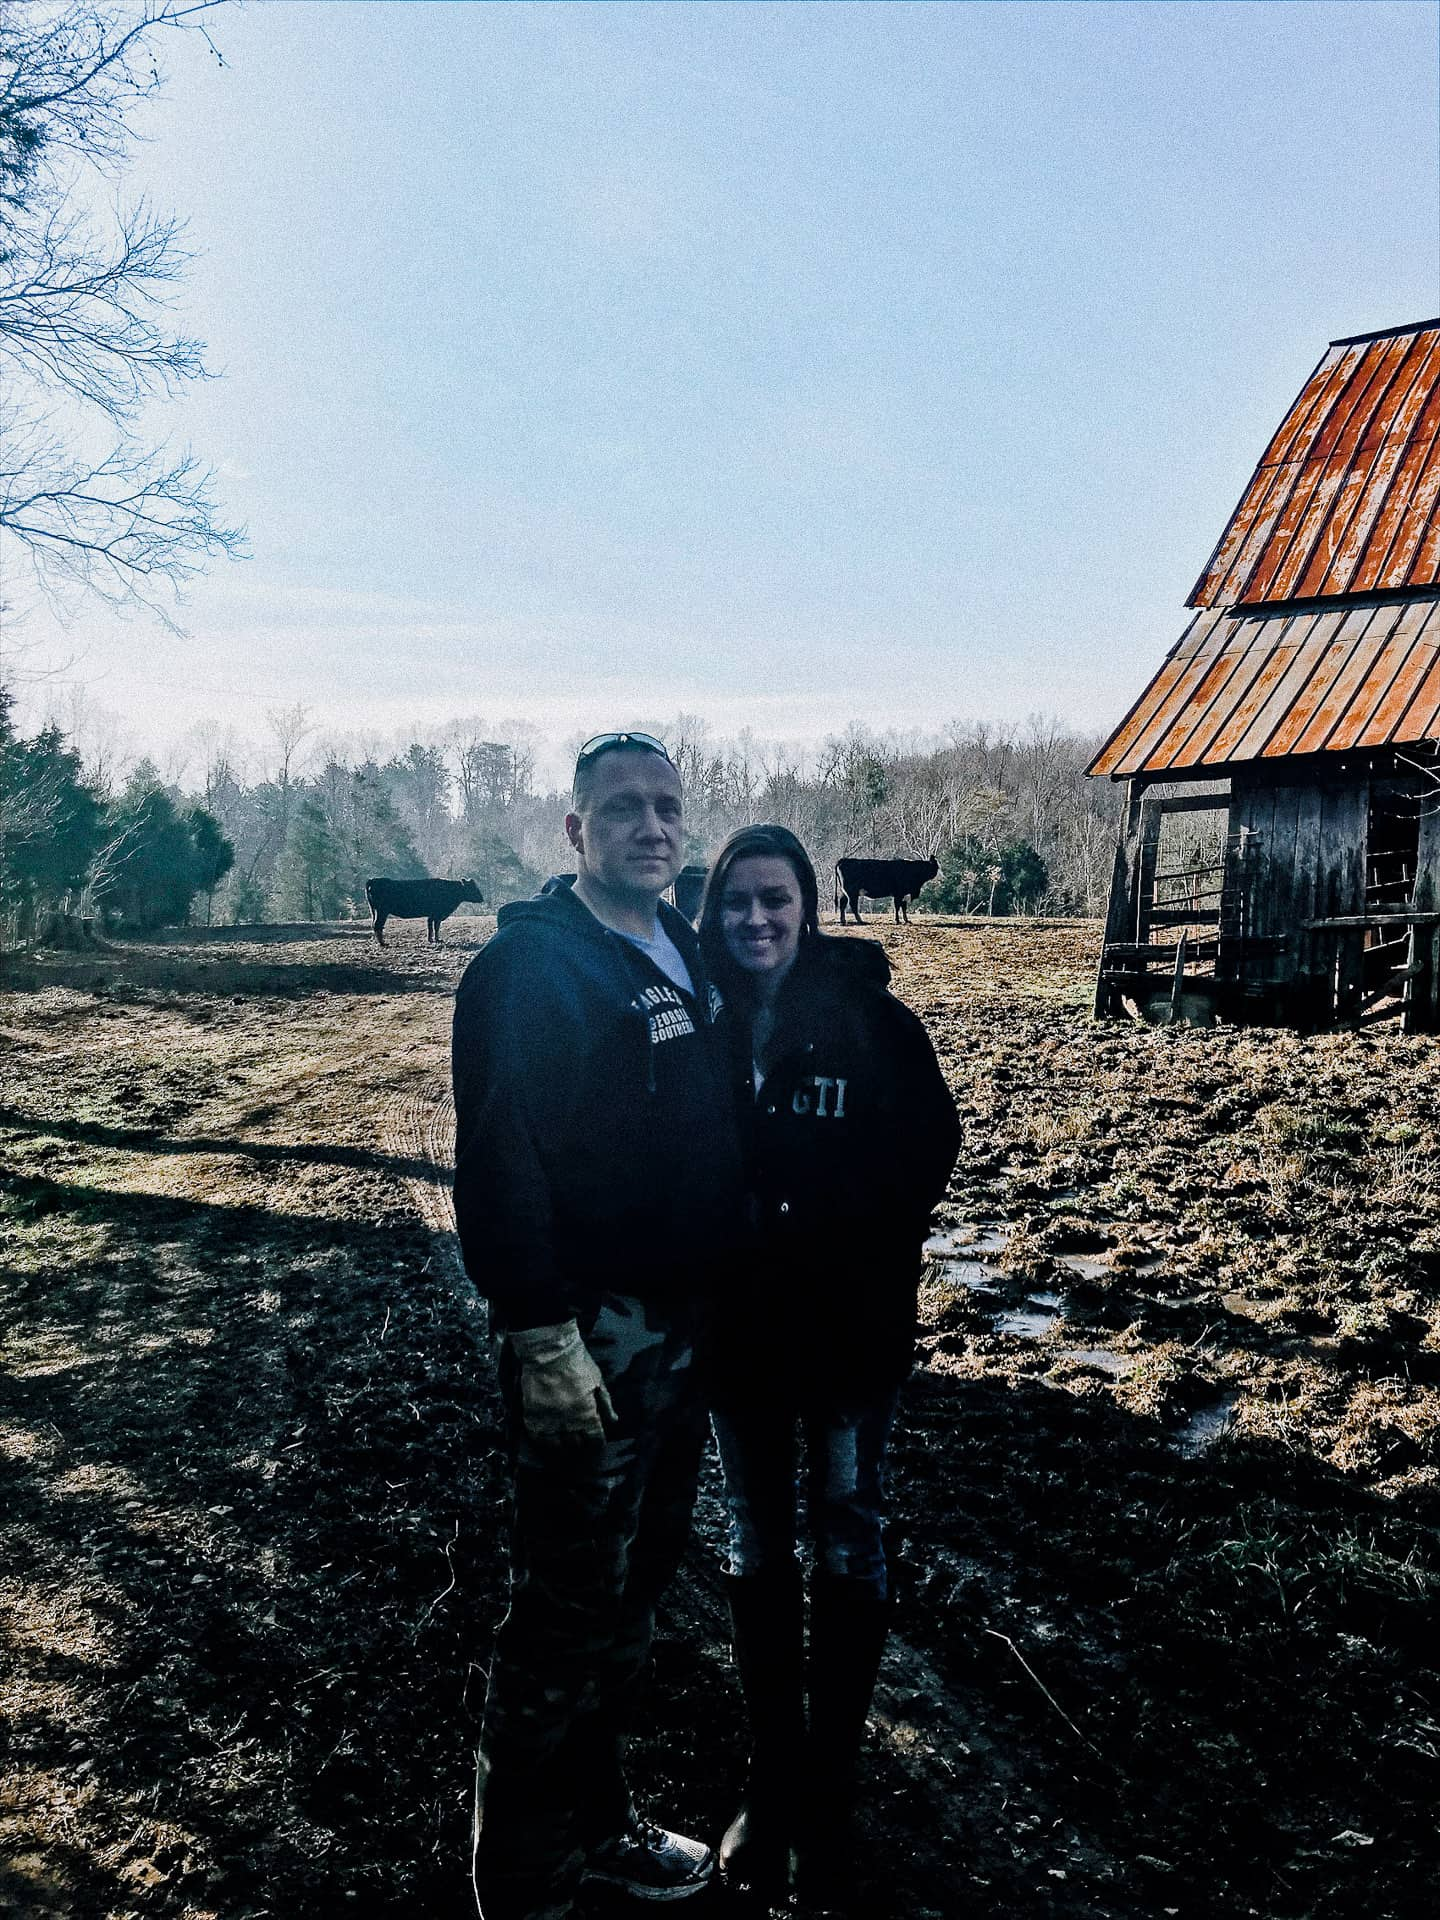 Mike and Amy standing near the barn.